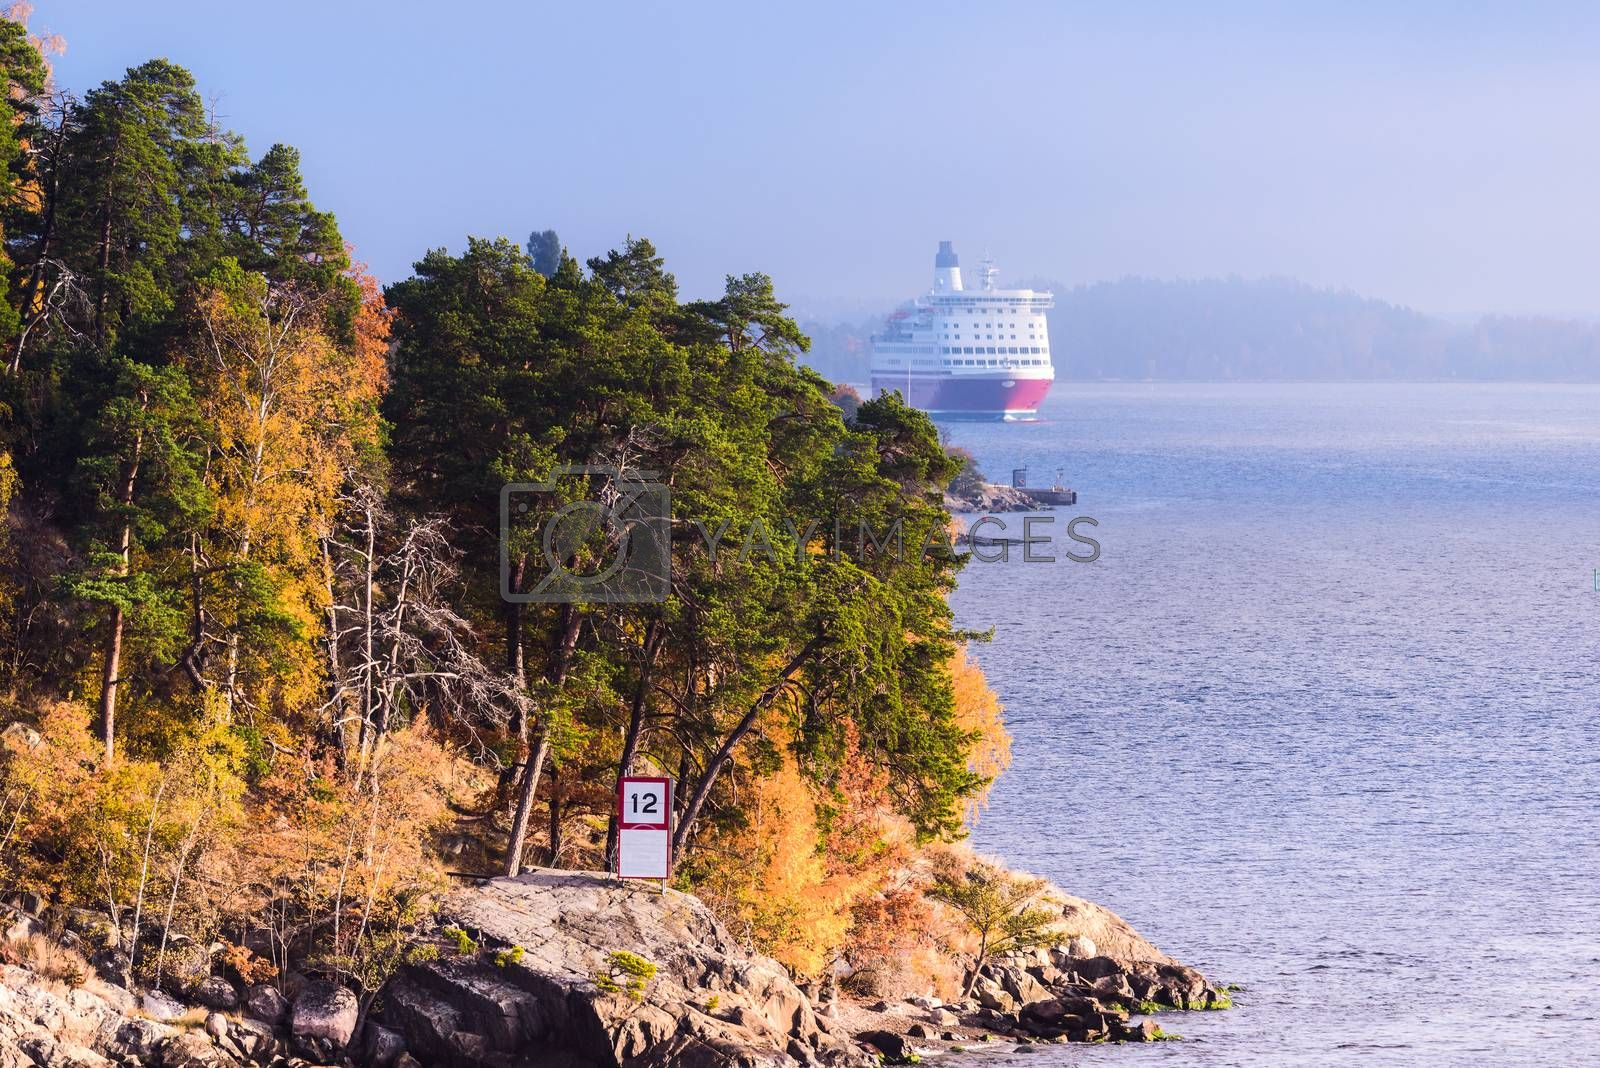 Landscape of Swedish sea fjord and cruise ship